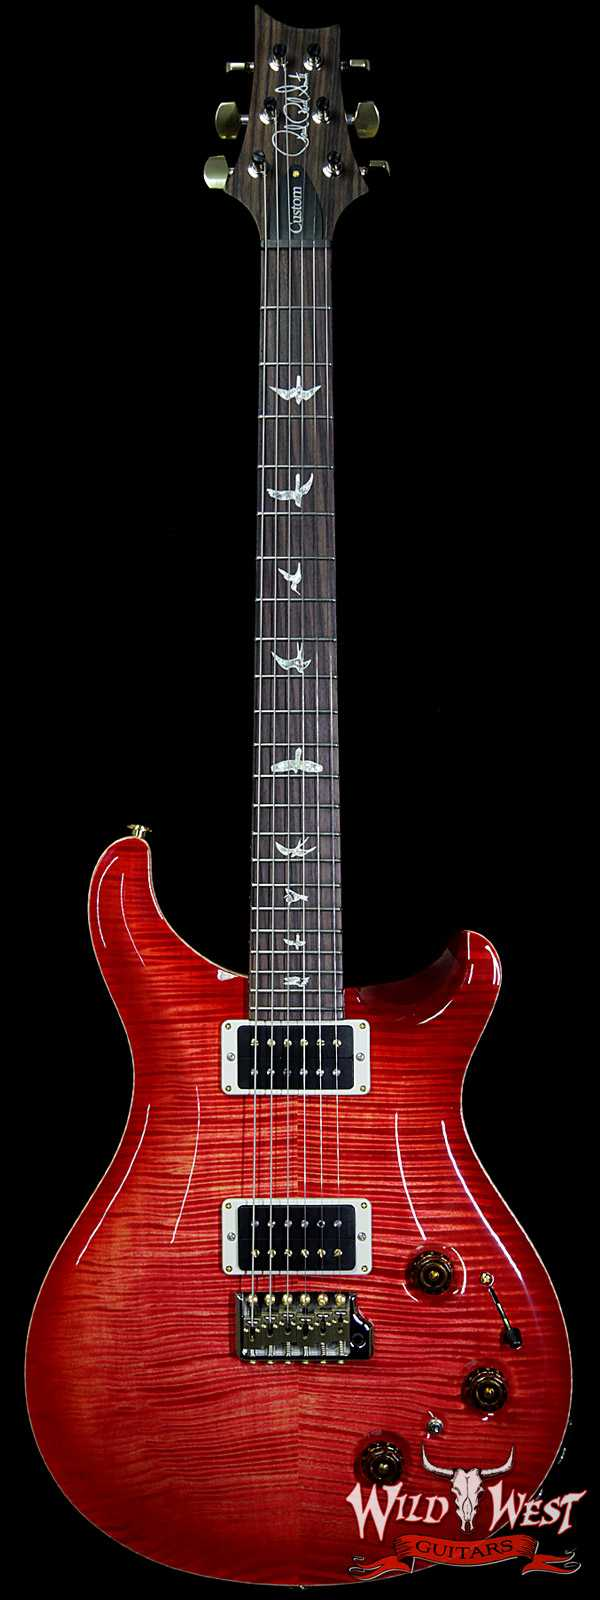 Paul Reed Smith PRS 10 Top Flame Maple Top Custom 22 Piezo P22 Rosewood Fretboard Blood Orange